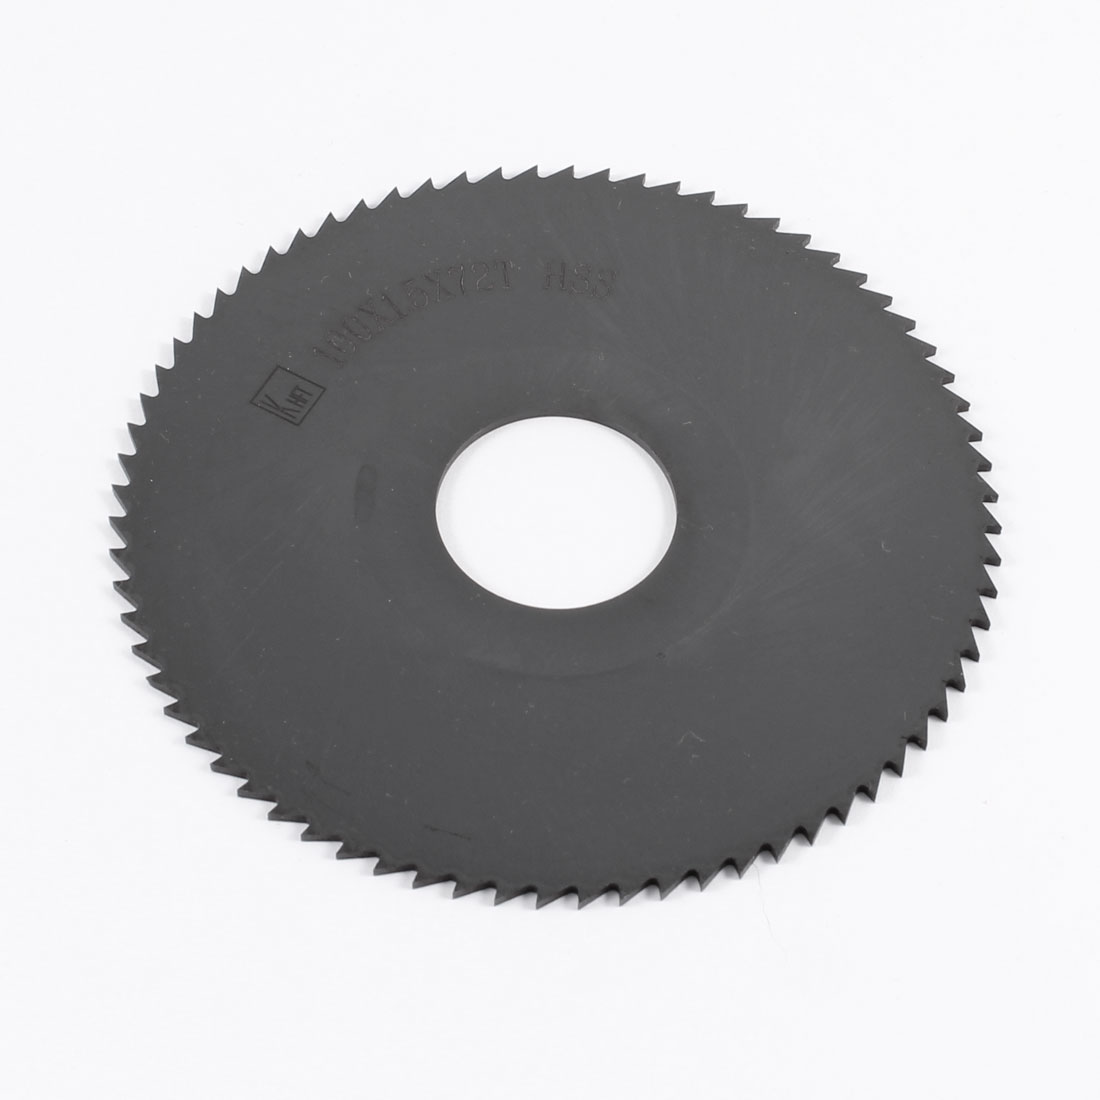 100mm x 1.5mm x 27mm Milling Cutter HSS 72T Slitting Saw Blade Black